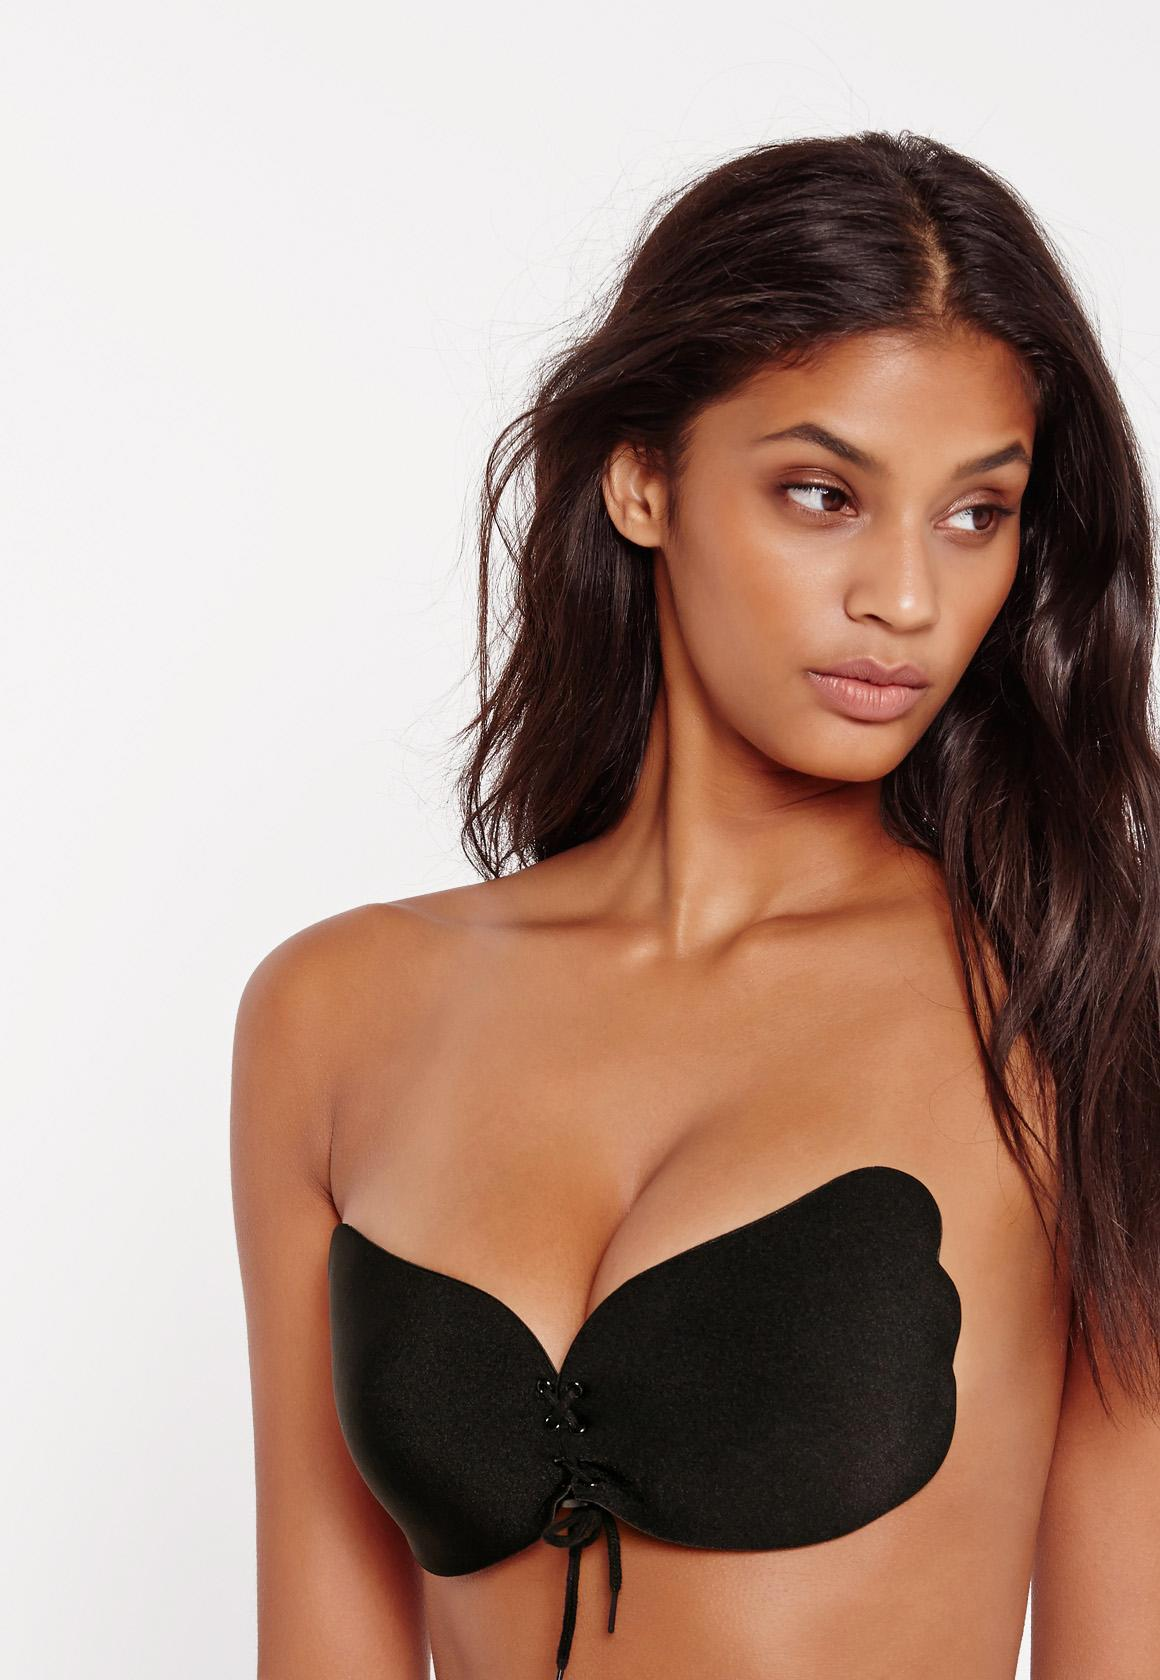 c7247e8084008 Missguided - Strapless Adhesive Push Up Bra Black - Lyst. View fullscreen